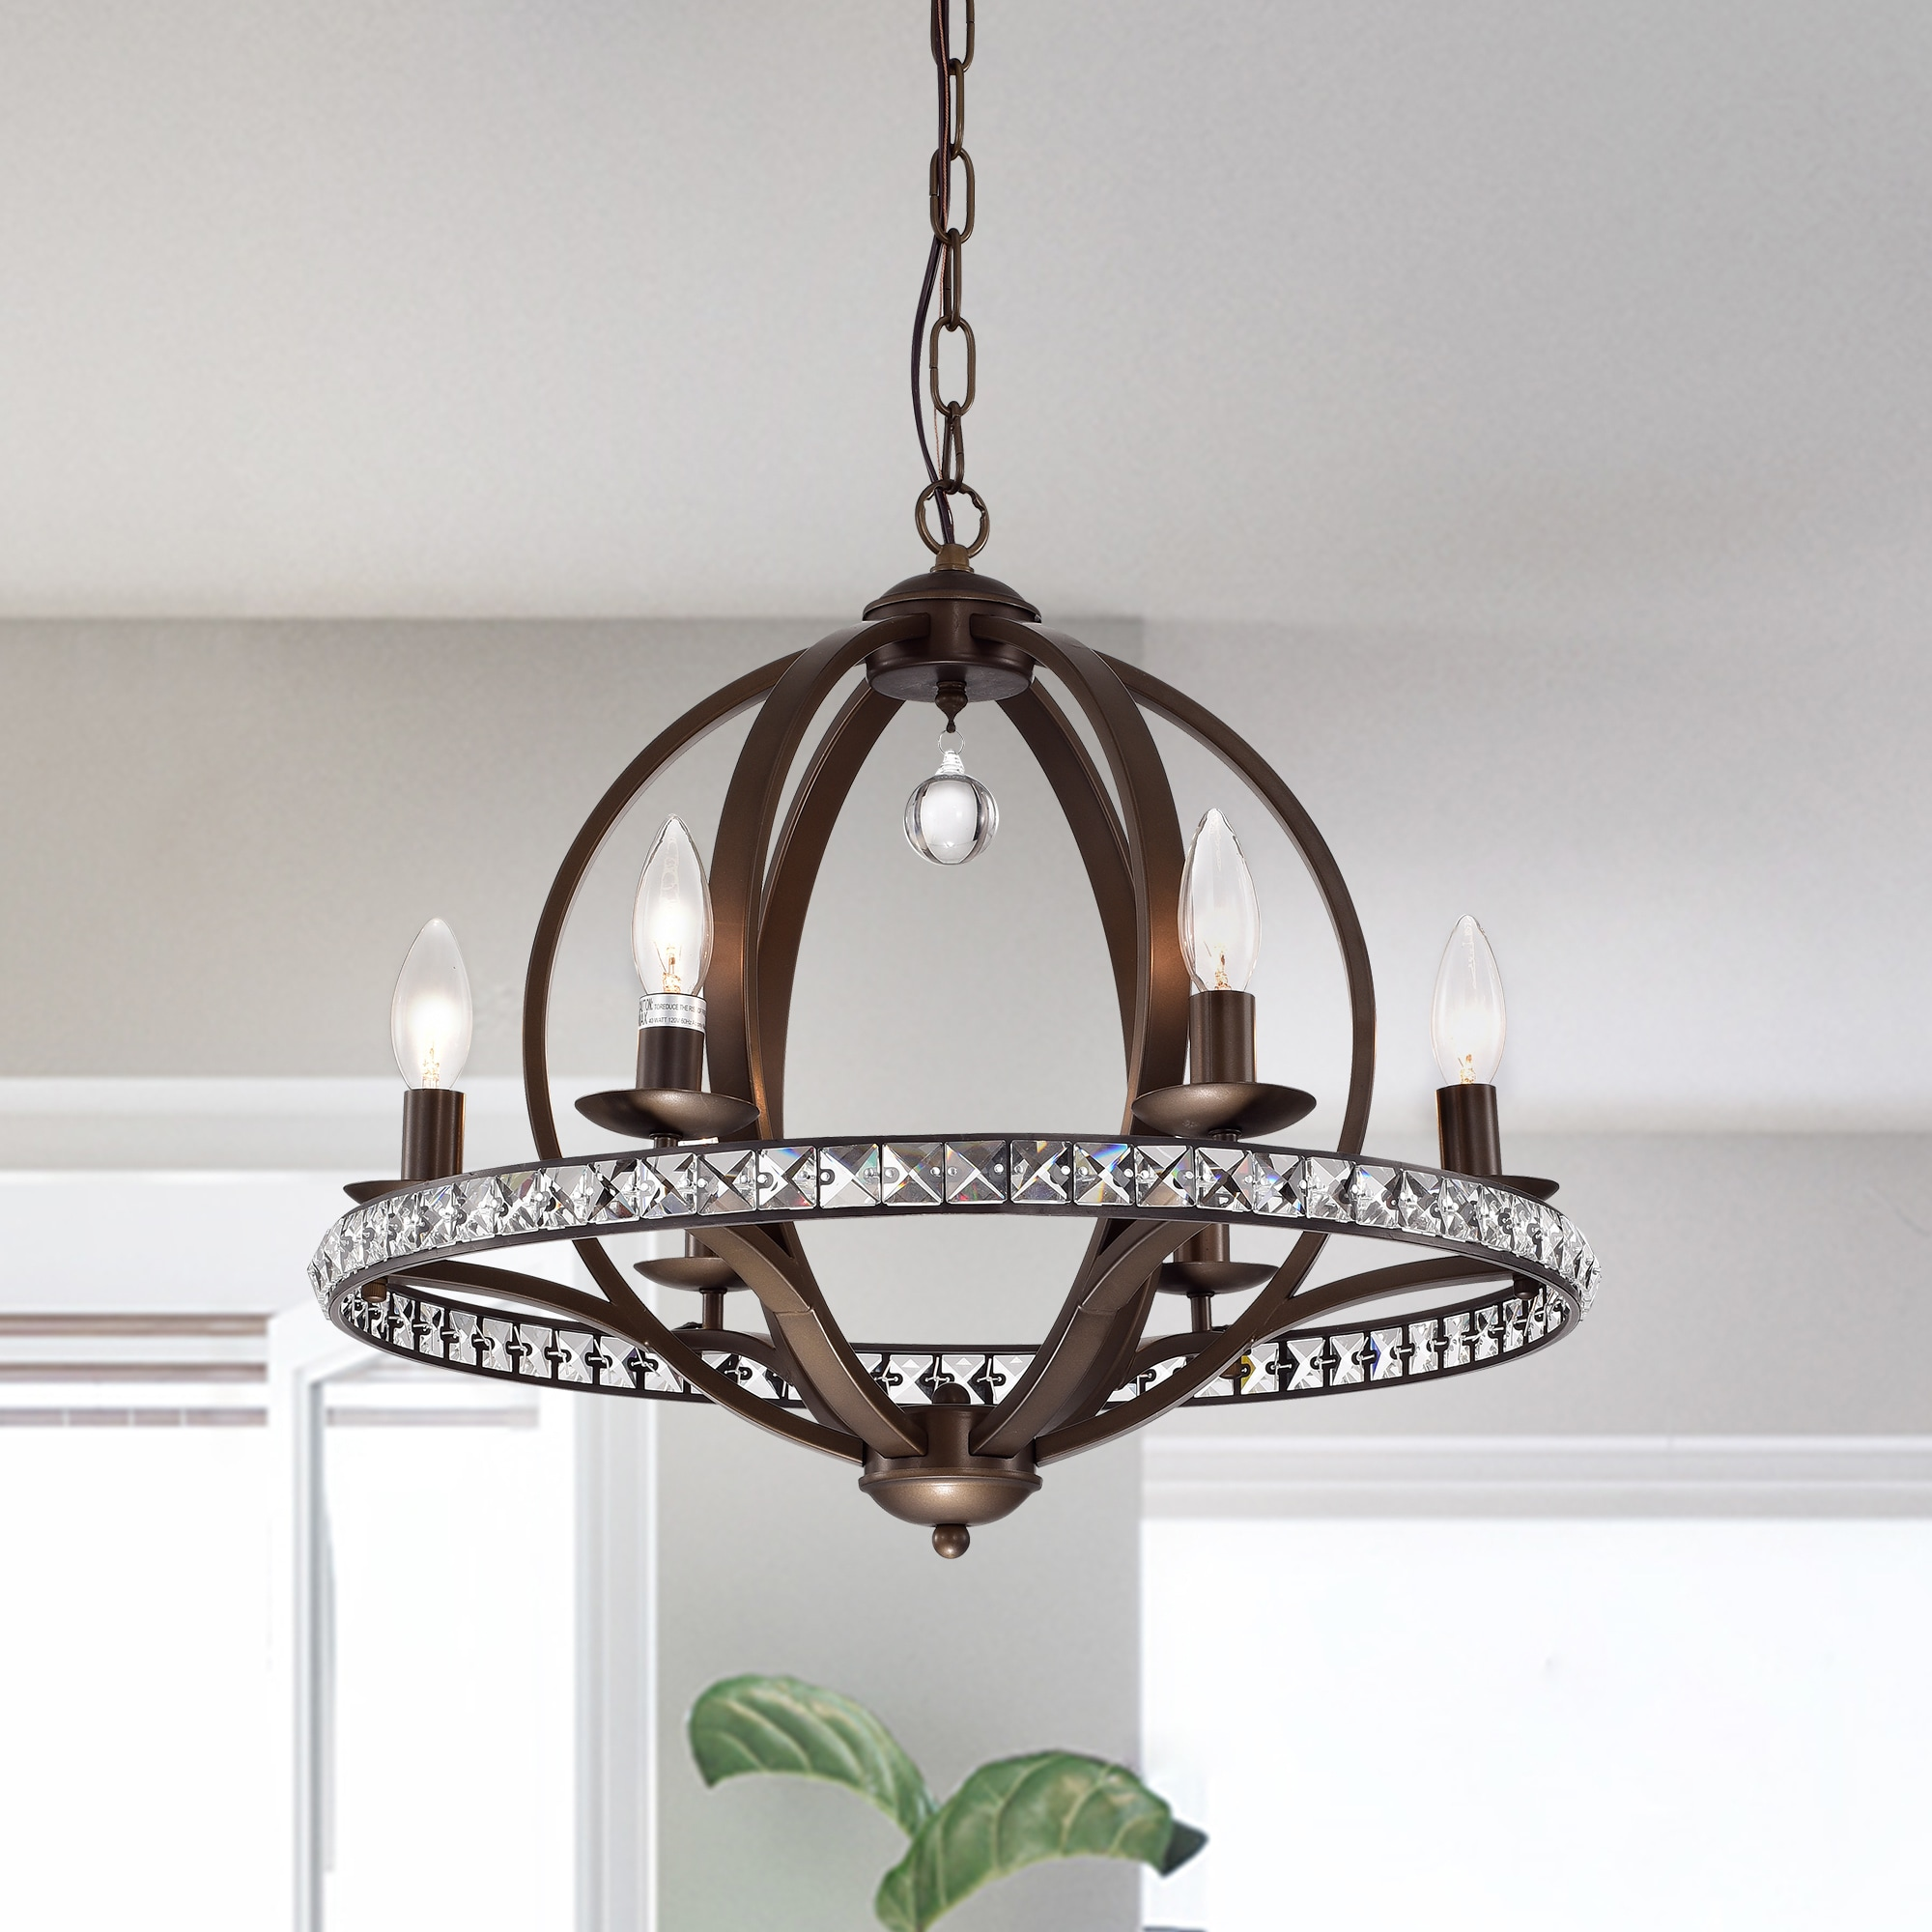 Lovi 6 Light Antique Bronze Pendant Lamp Free Shipping Today 20466051